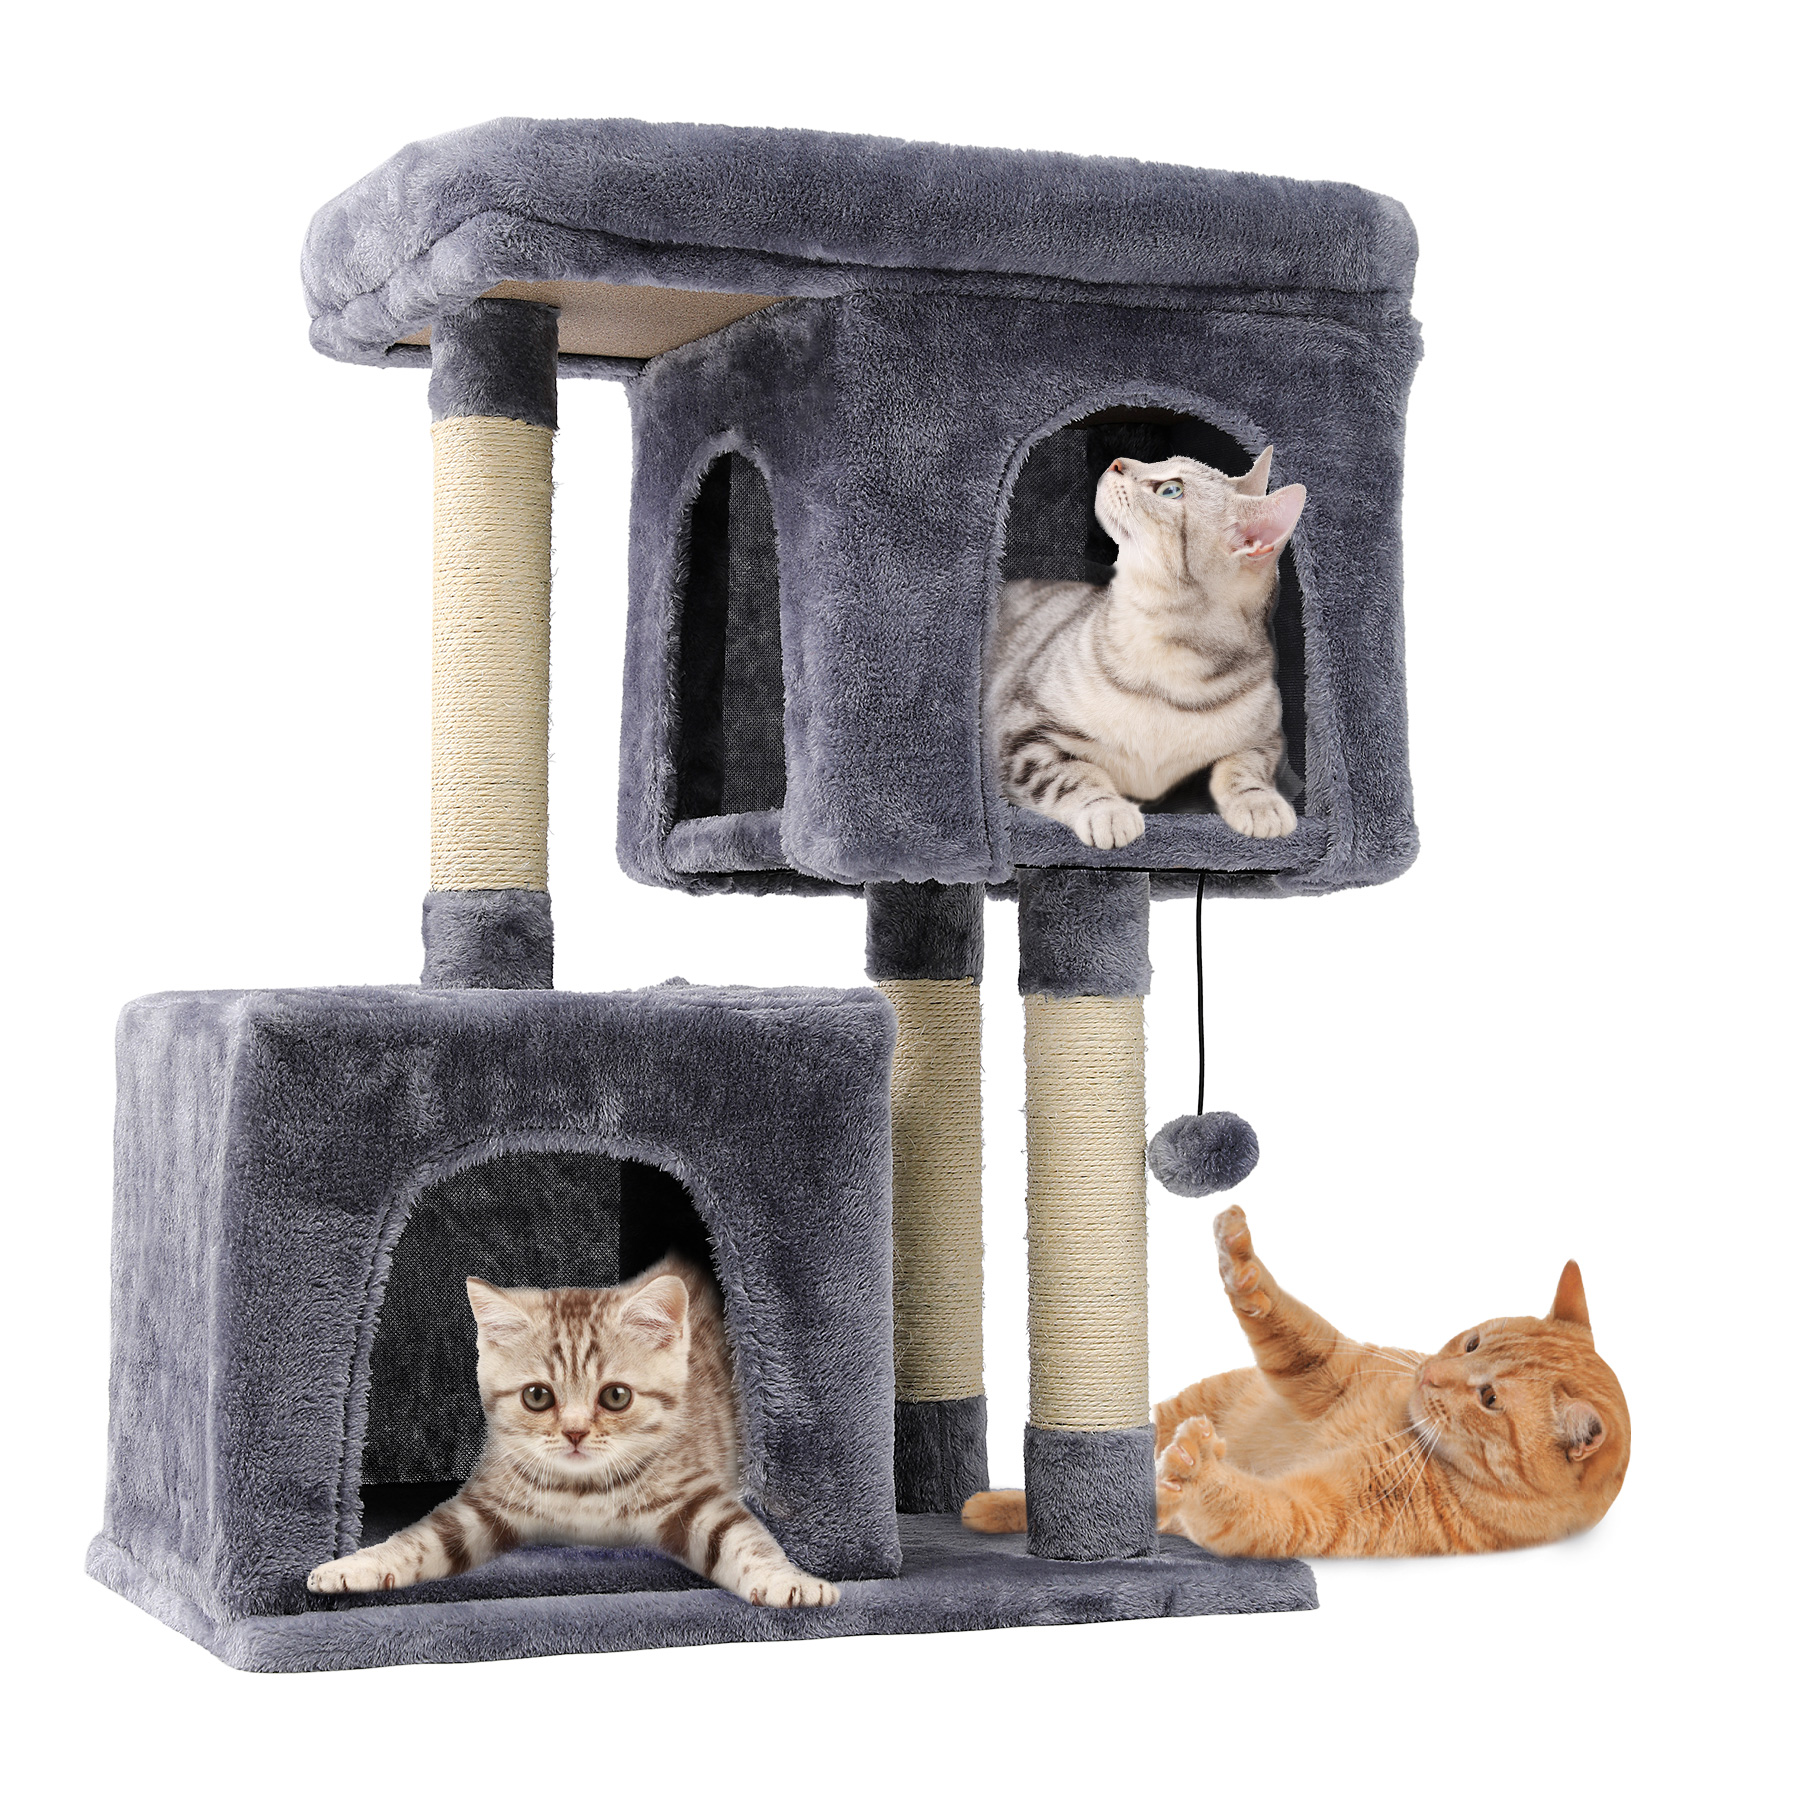 Preenex 3 Tiers 2 Big Condo House For Multiple Large Cats Indoor With Jungle Gym Cat Toy Walmart Canada